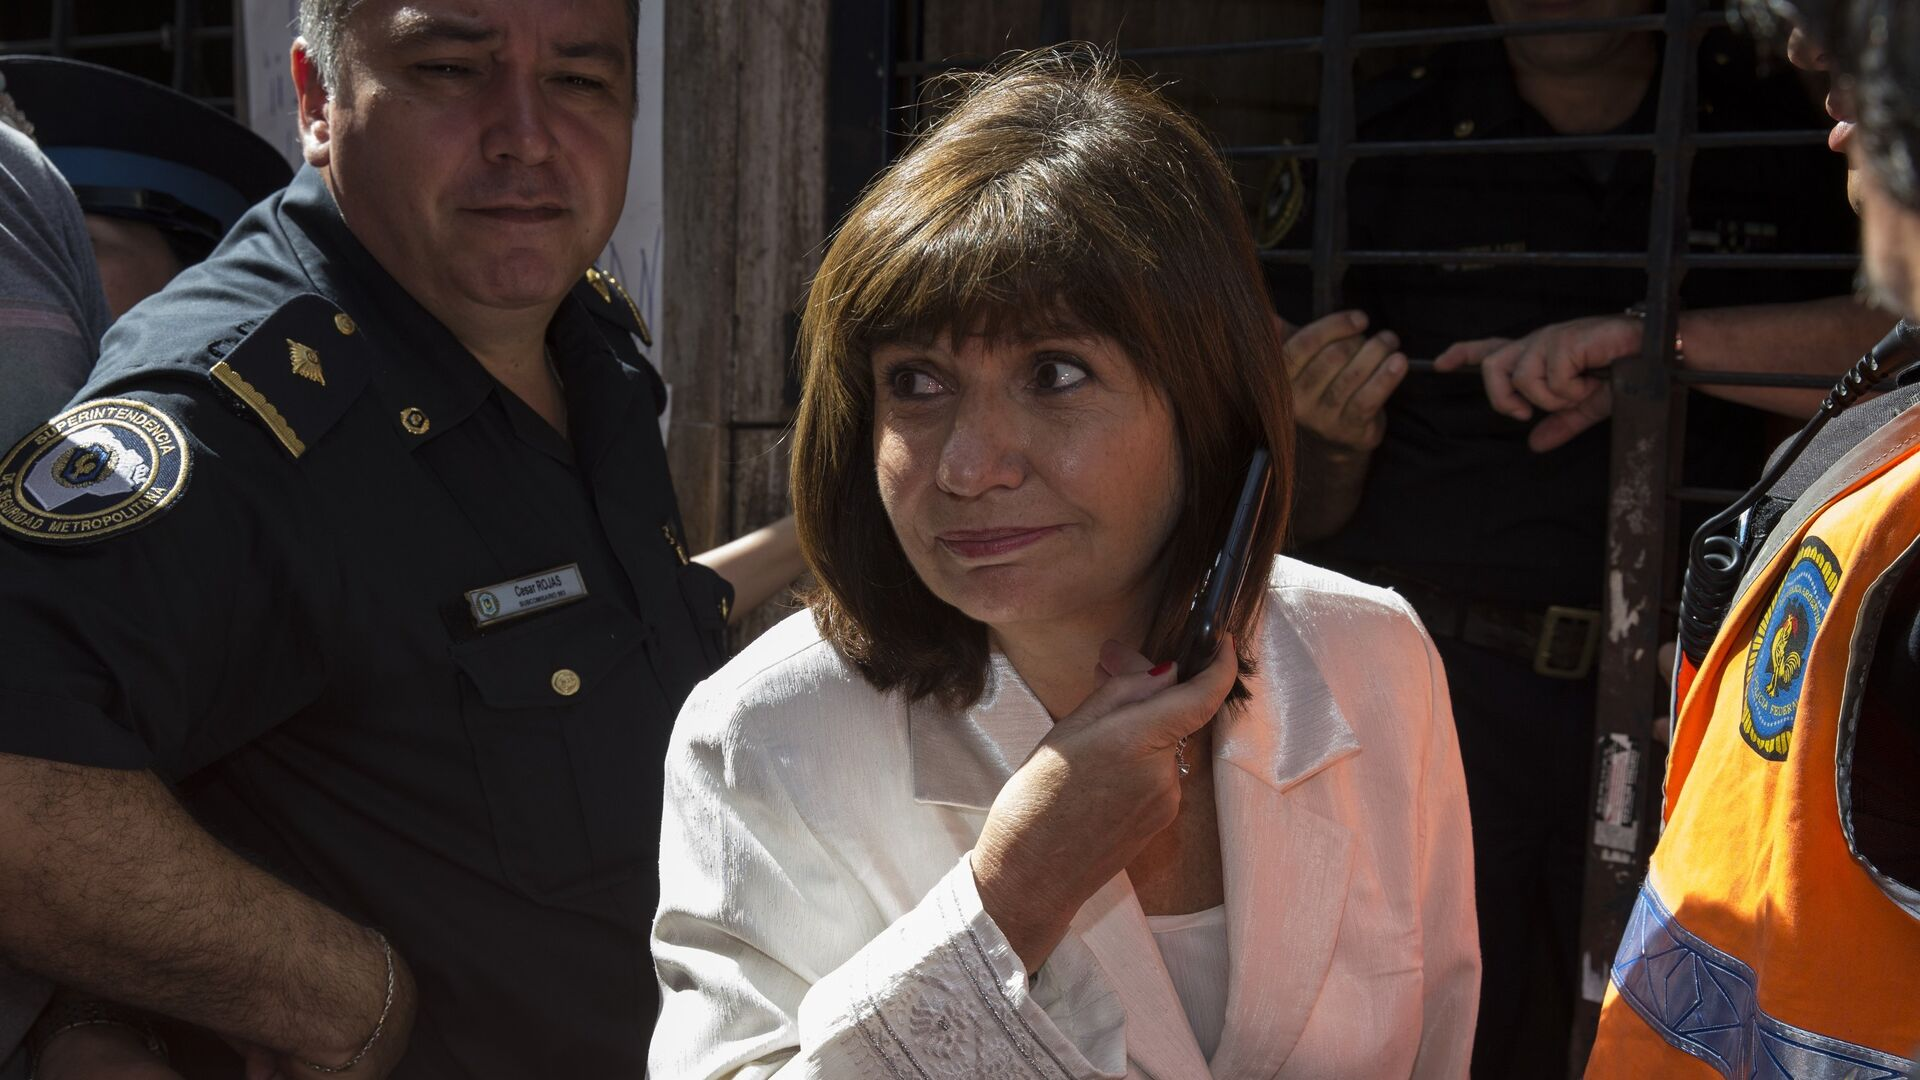 Congresswoman Patricia Bullrich enters the office of prosecutor Viviana Fein, who is investigating special prosecutor Alberto Nisman's death, in Buenos Aires - Sputnik Mundo, 1920, 31.03.2021